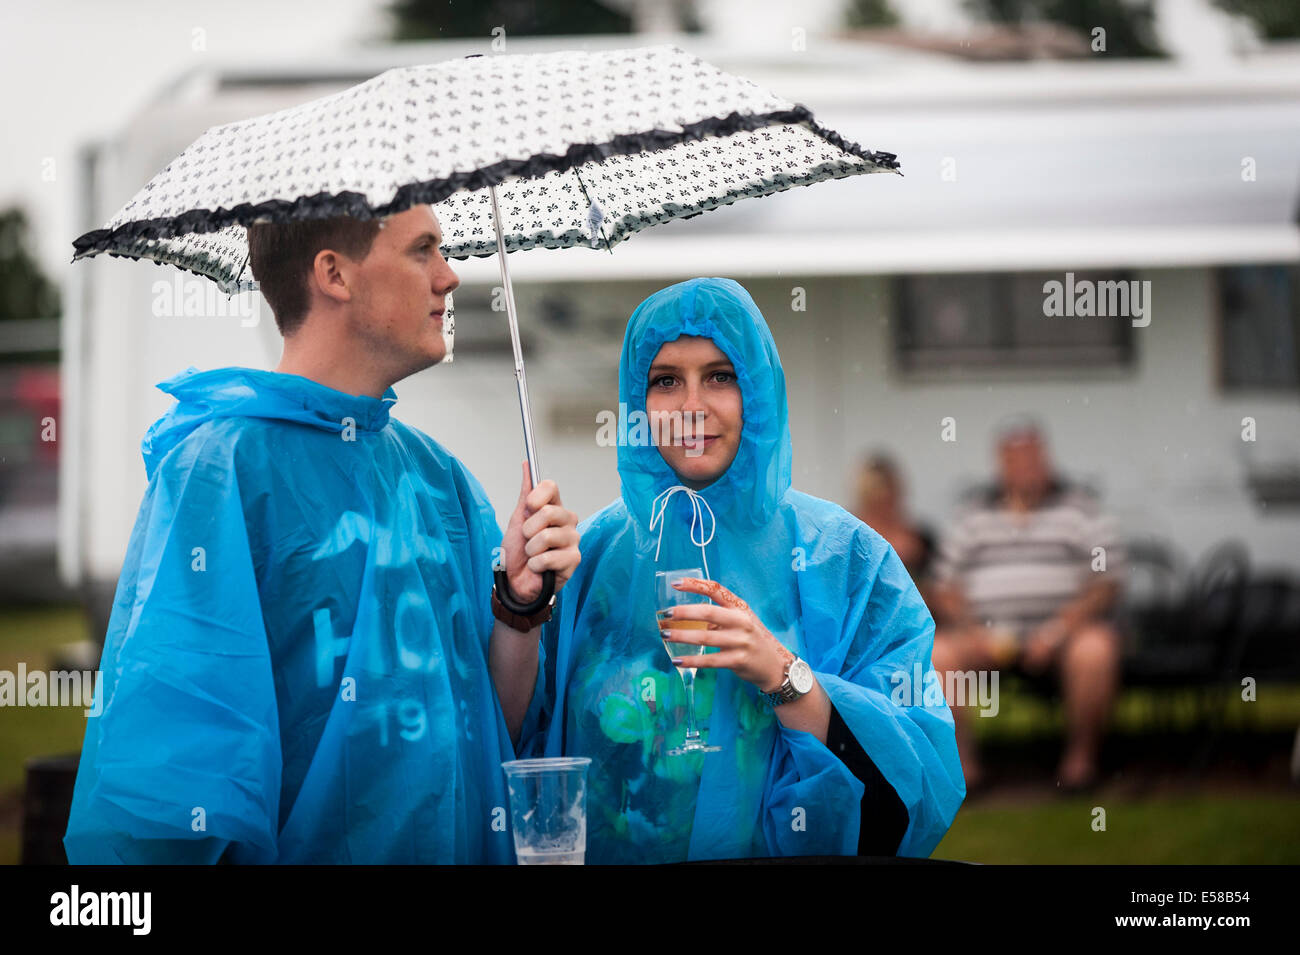 Festivalgoers enjoying themselves at the Brentwood Festival despite the bad weather. - Stock Image